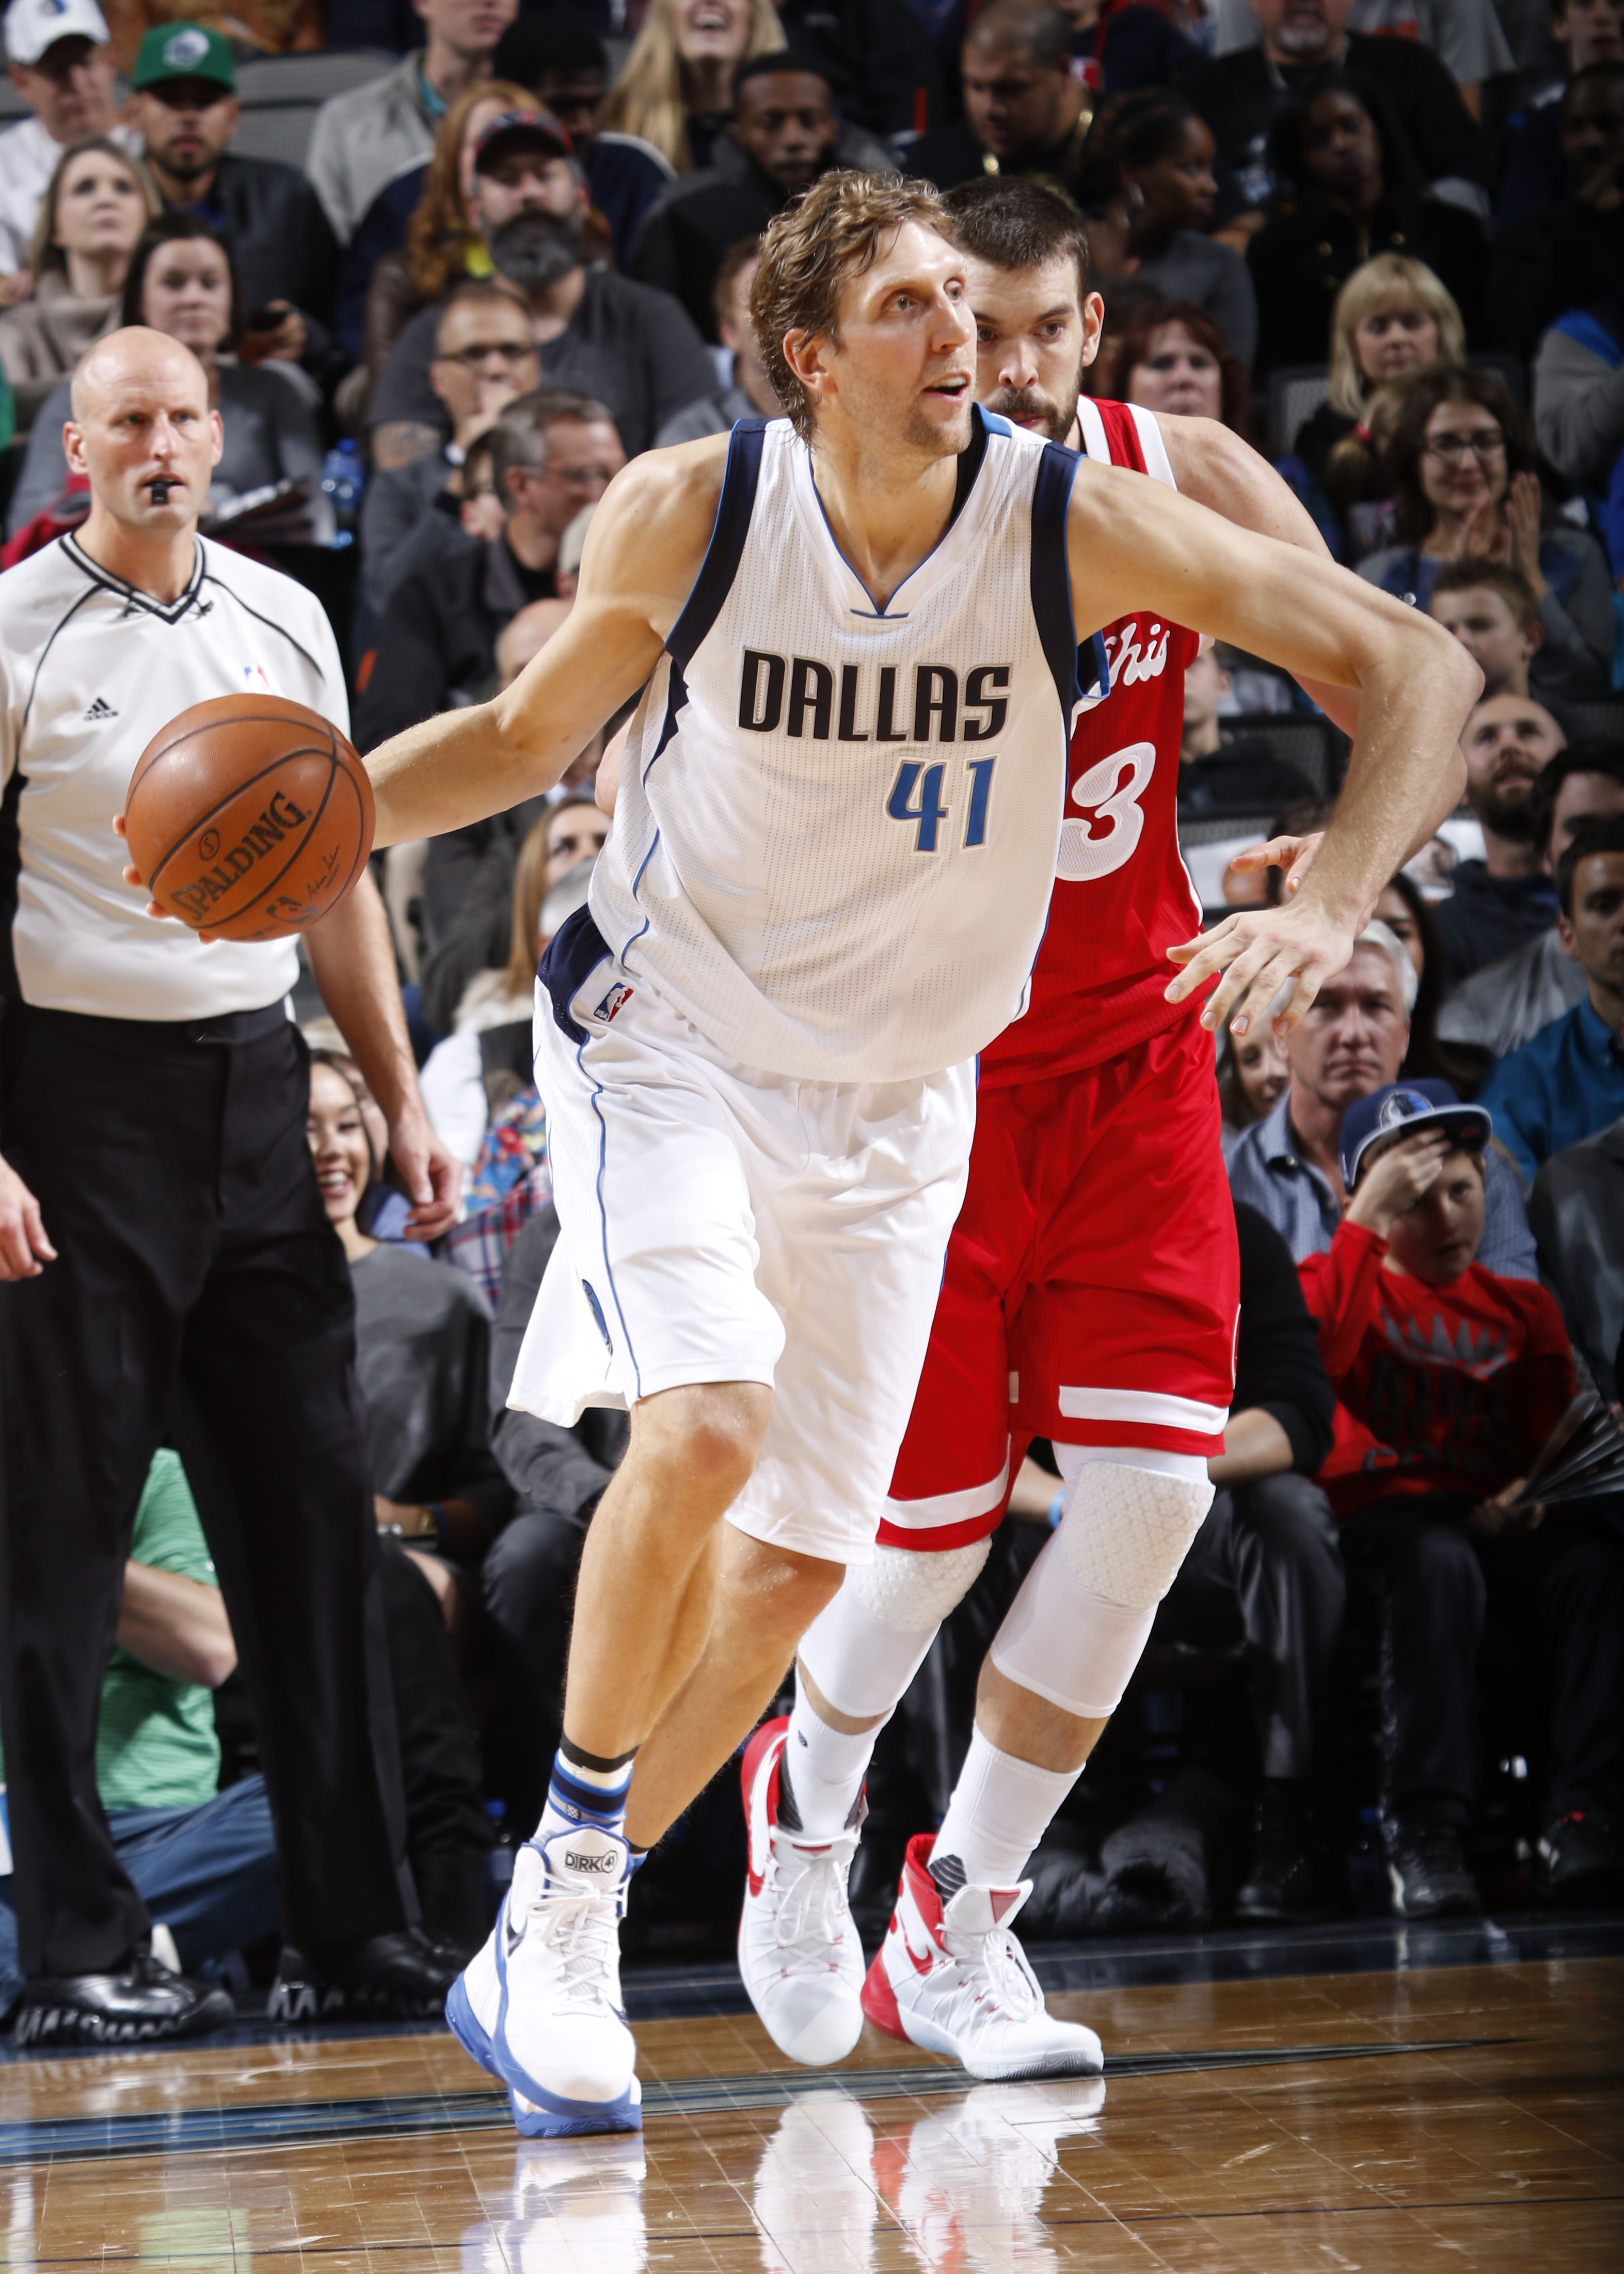 DALLAS, TX - DECEMBER 18: Dirk Nowitzki #41 of the Dallas Mavericks drives against the Memphis Grizzlies on December 18, 2015 at the American Airlines Center in Dallas, Texas. (Photo by Glenn James/NBAE via Getty Images)